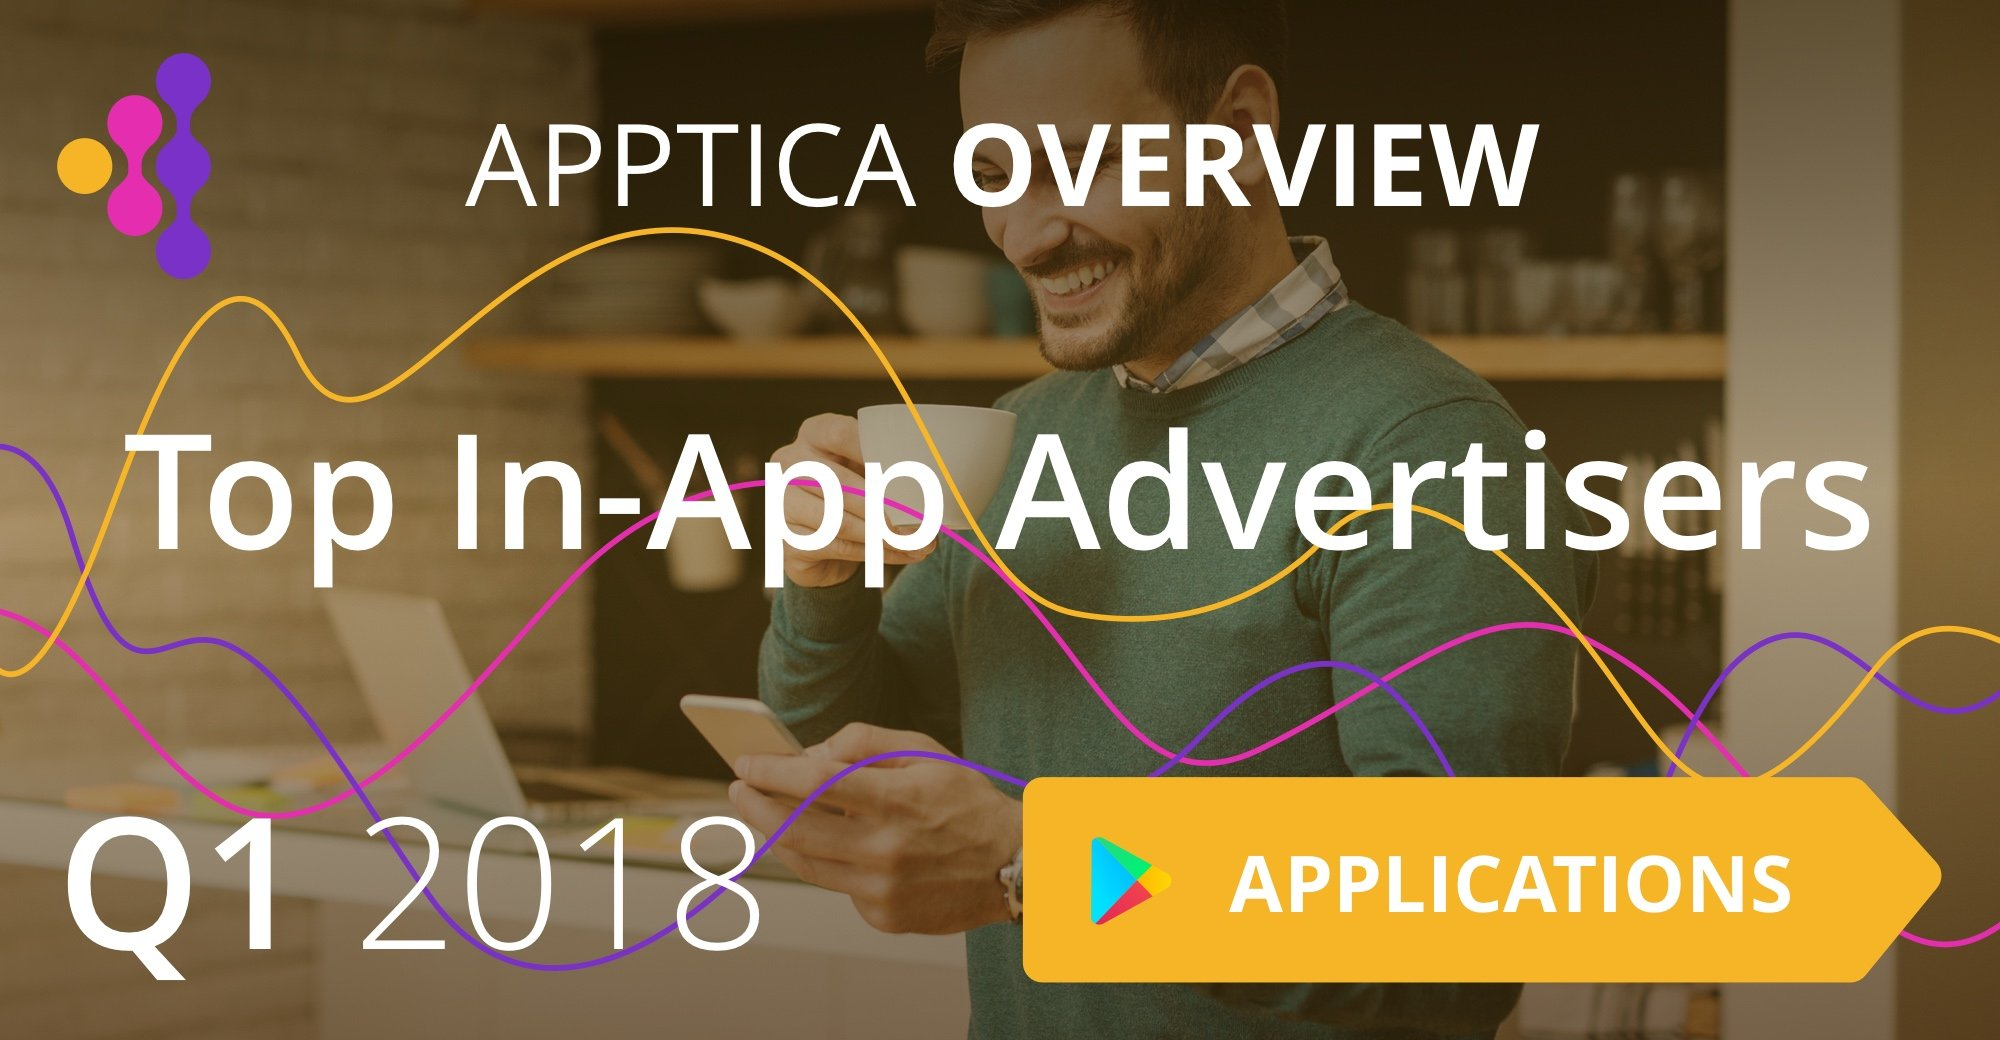 Top In-App Advertisers of Q1 2018, Android, Application Category. Apptica Overview.